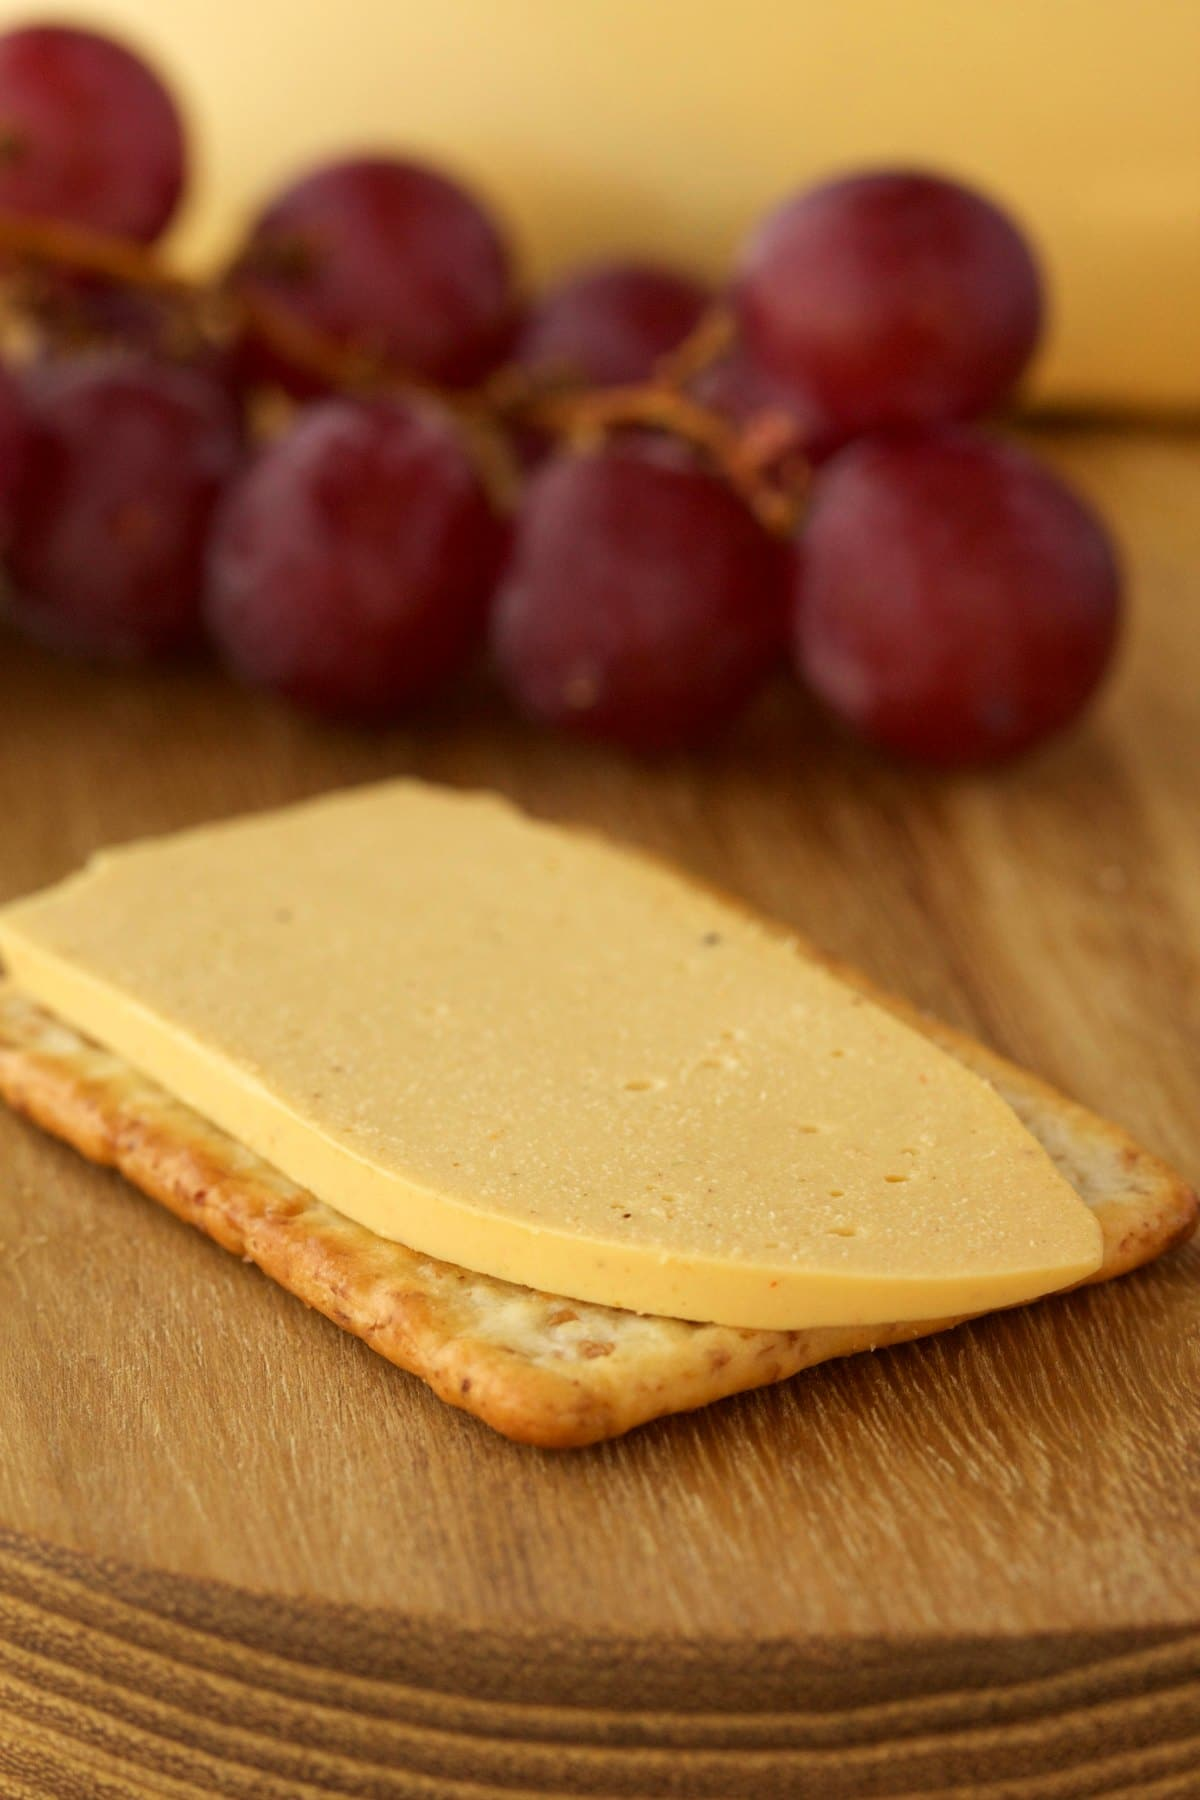 A slice of vegan cashew cheese on a cracker.